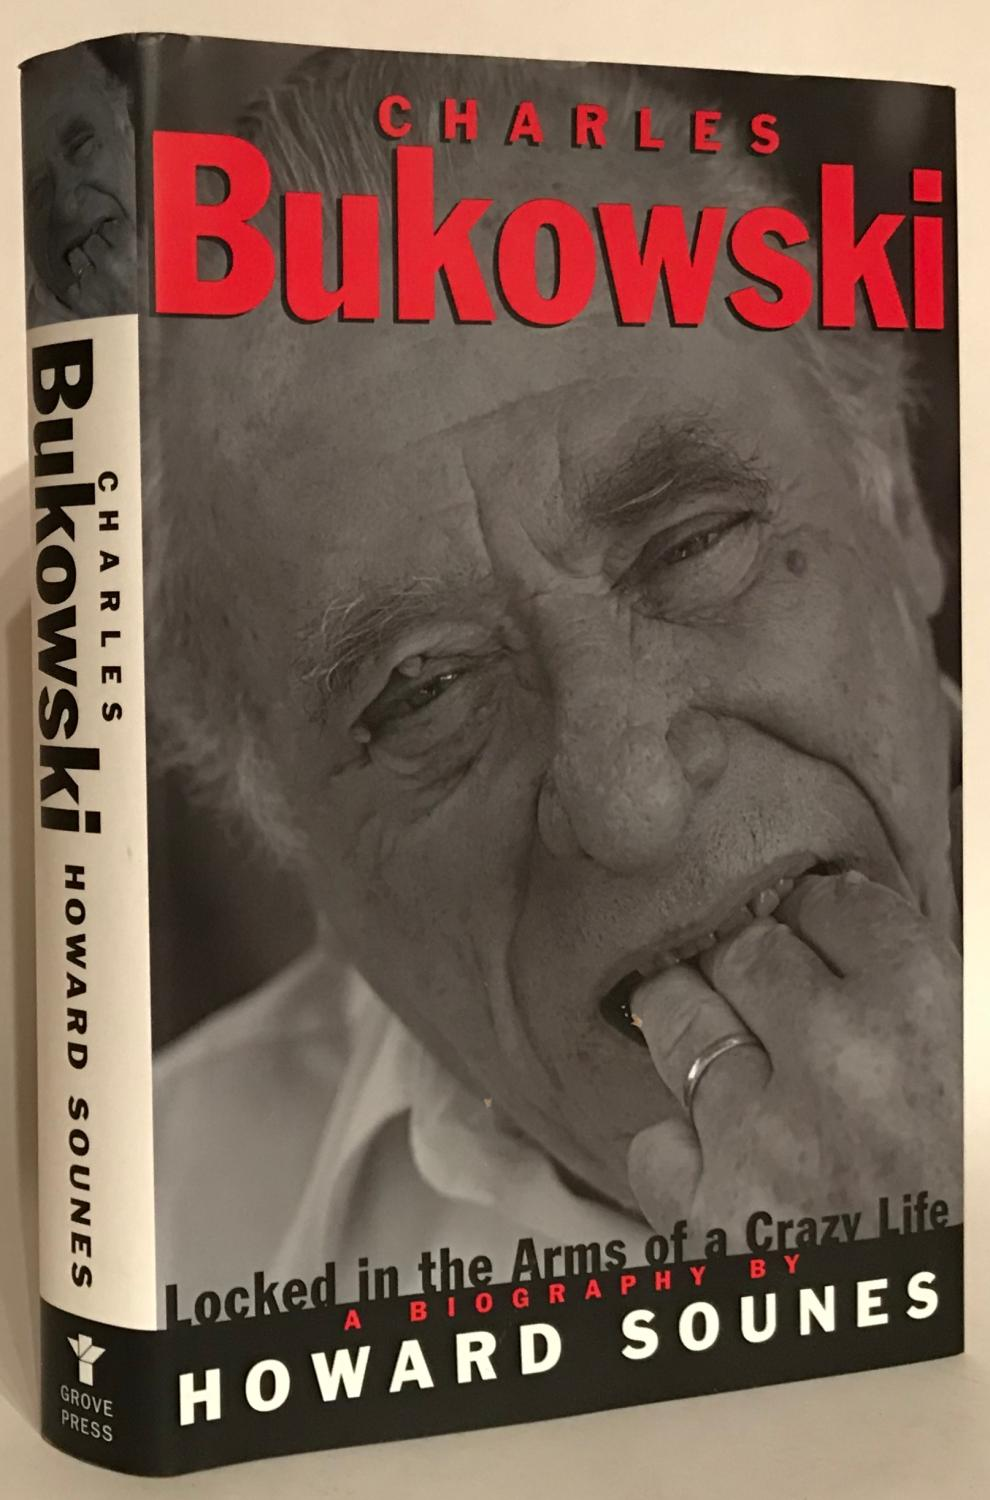 Charles Bukowski. Locked in the Arms of a Crazy Life. - Sounes, Howard